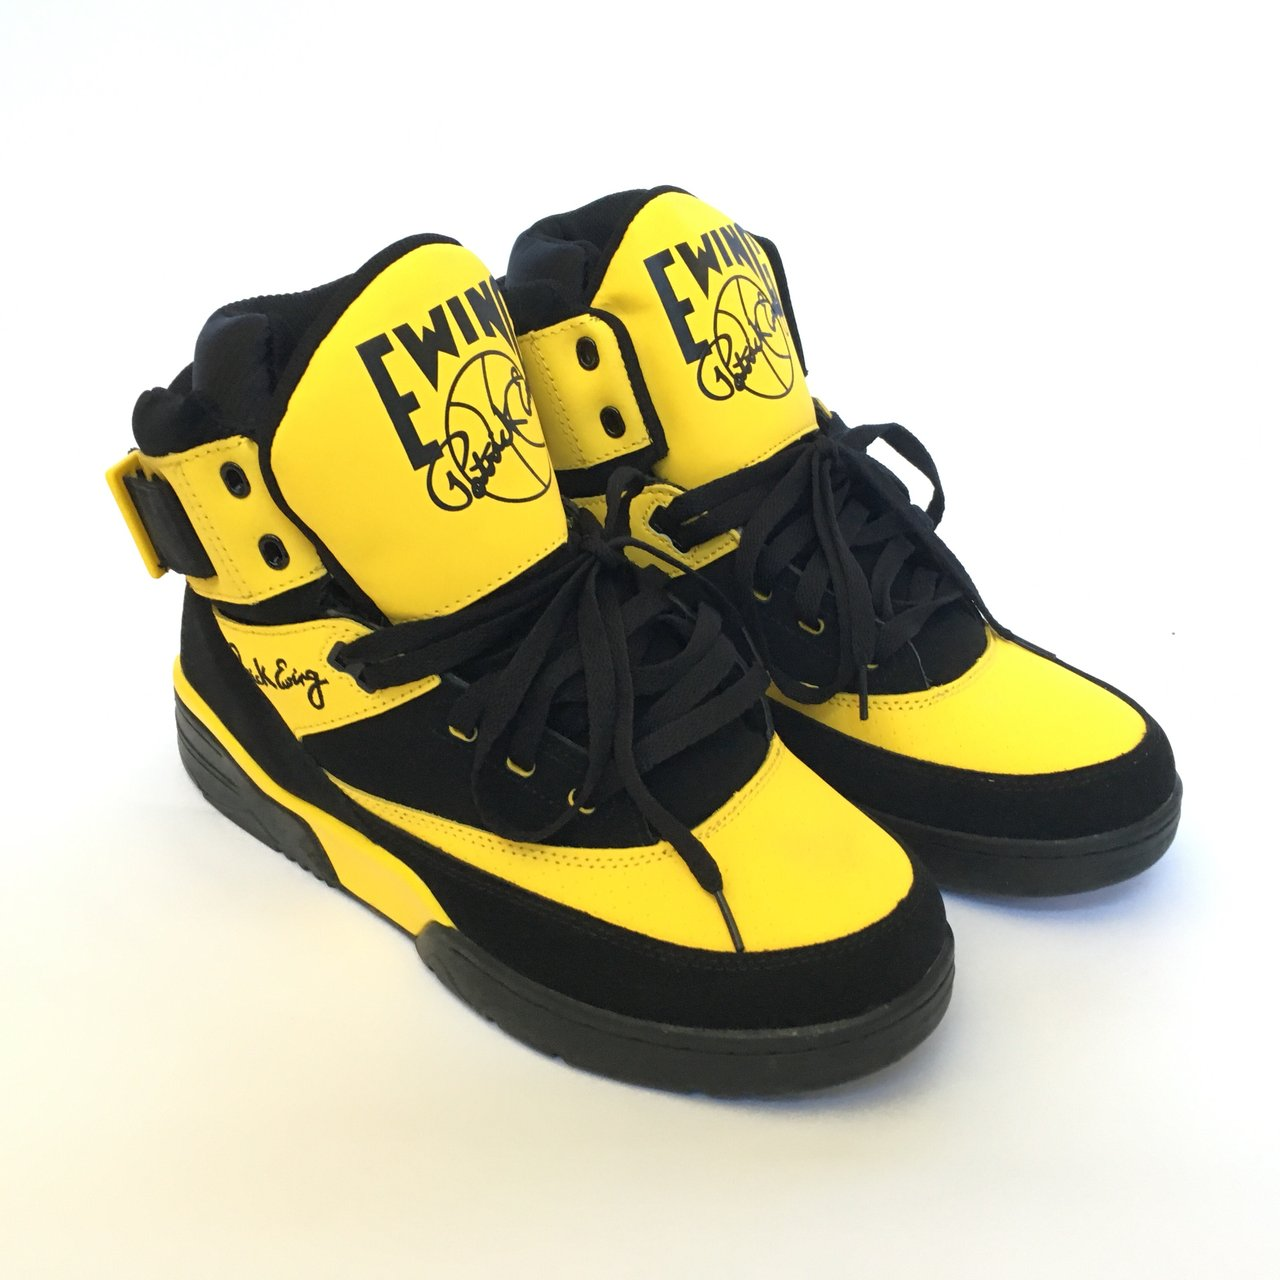 "huge selection of 8ec90 36e96 Ewing 33 Hi ""Dandelion"" Pre-Owned 10 10 Sz. 12 Very.  60 · Air Jordan ..."